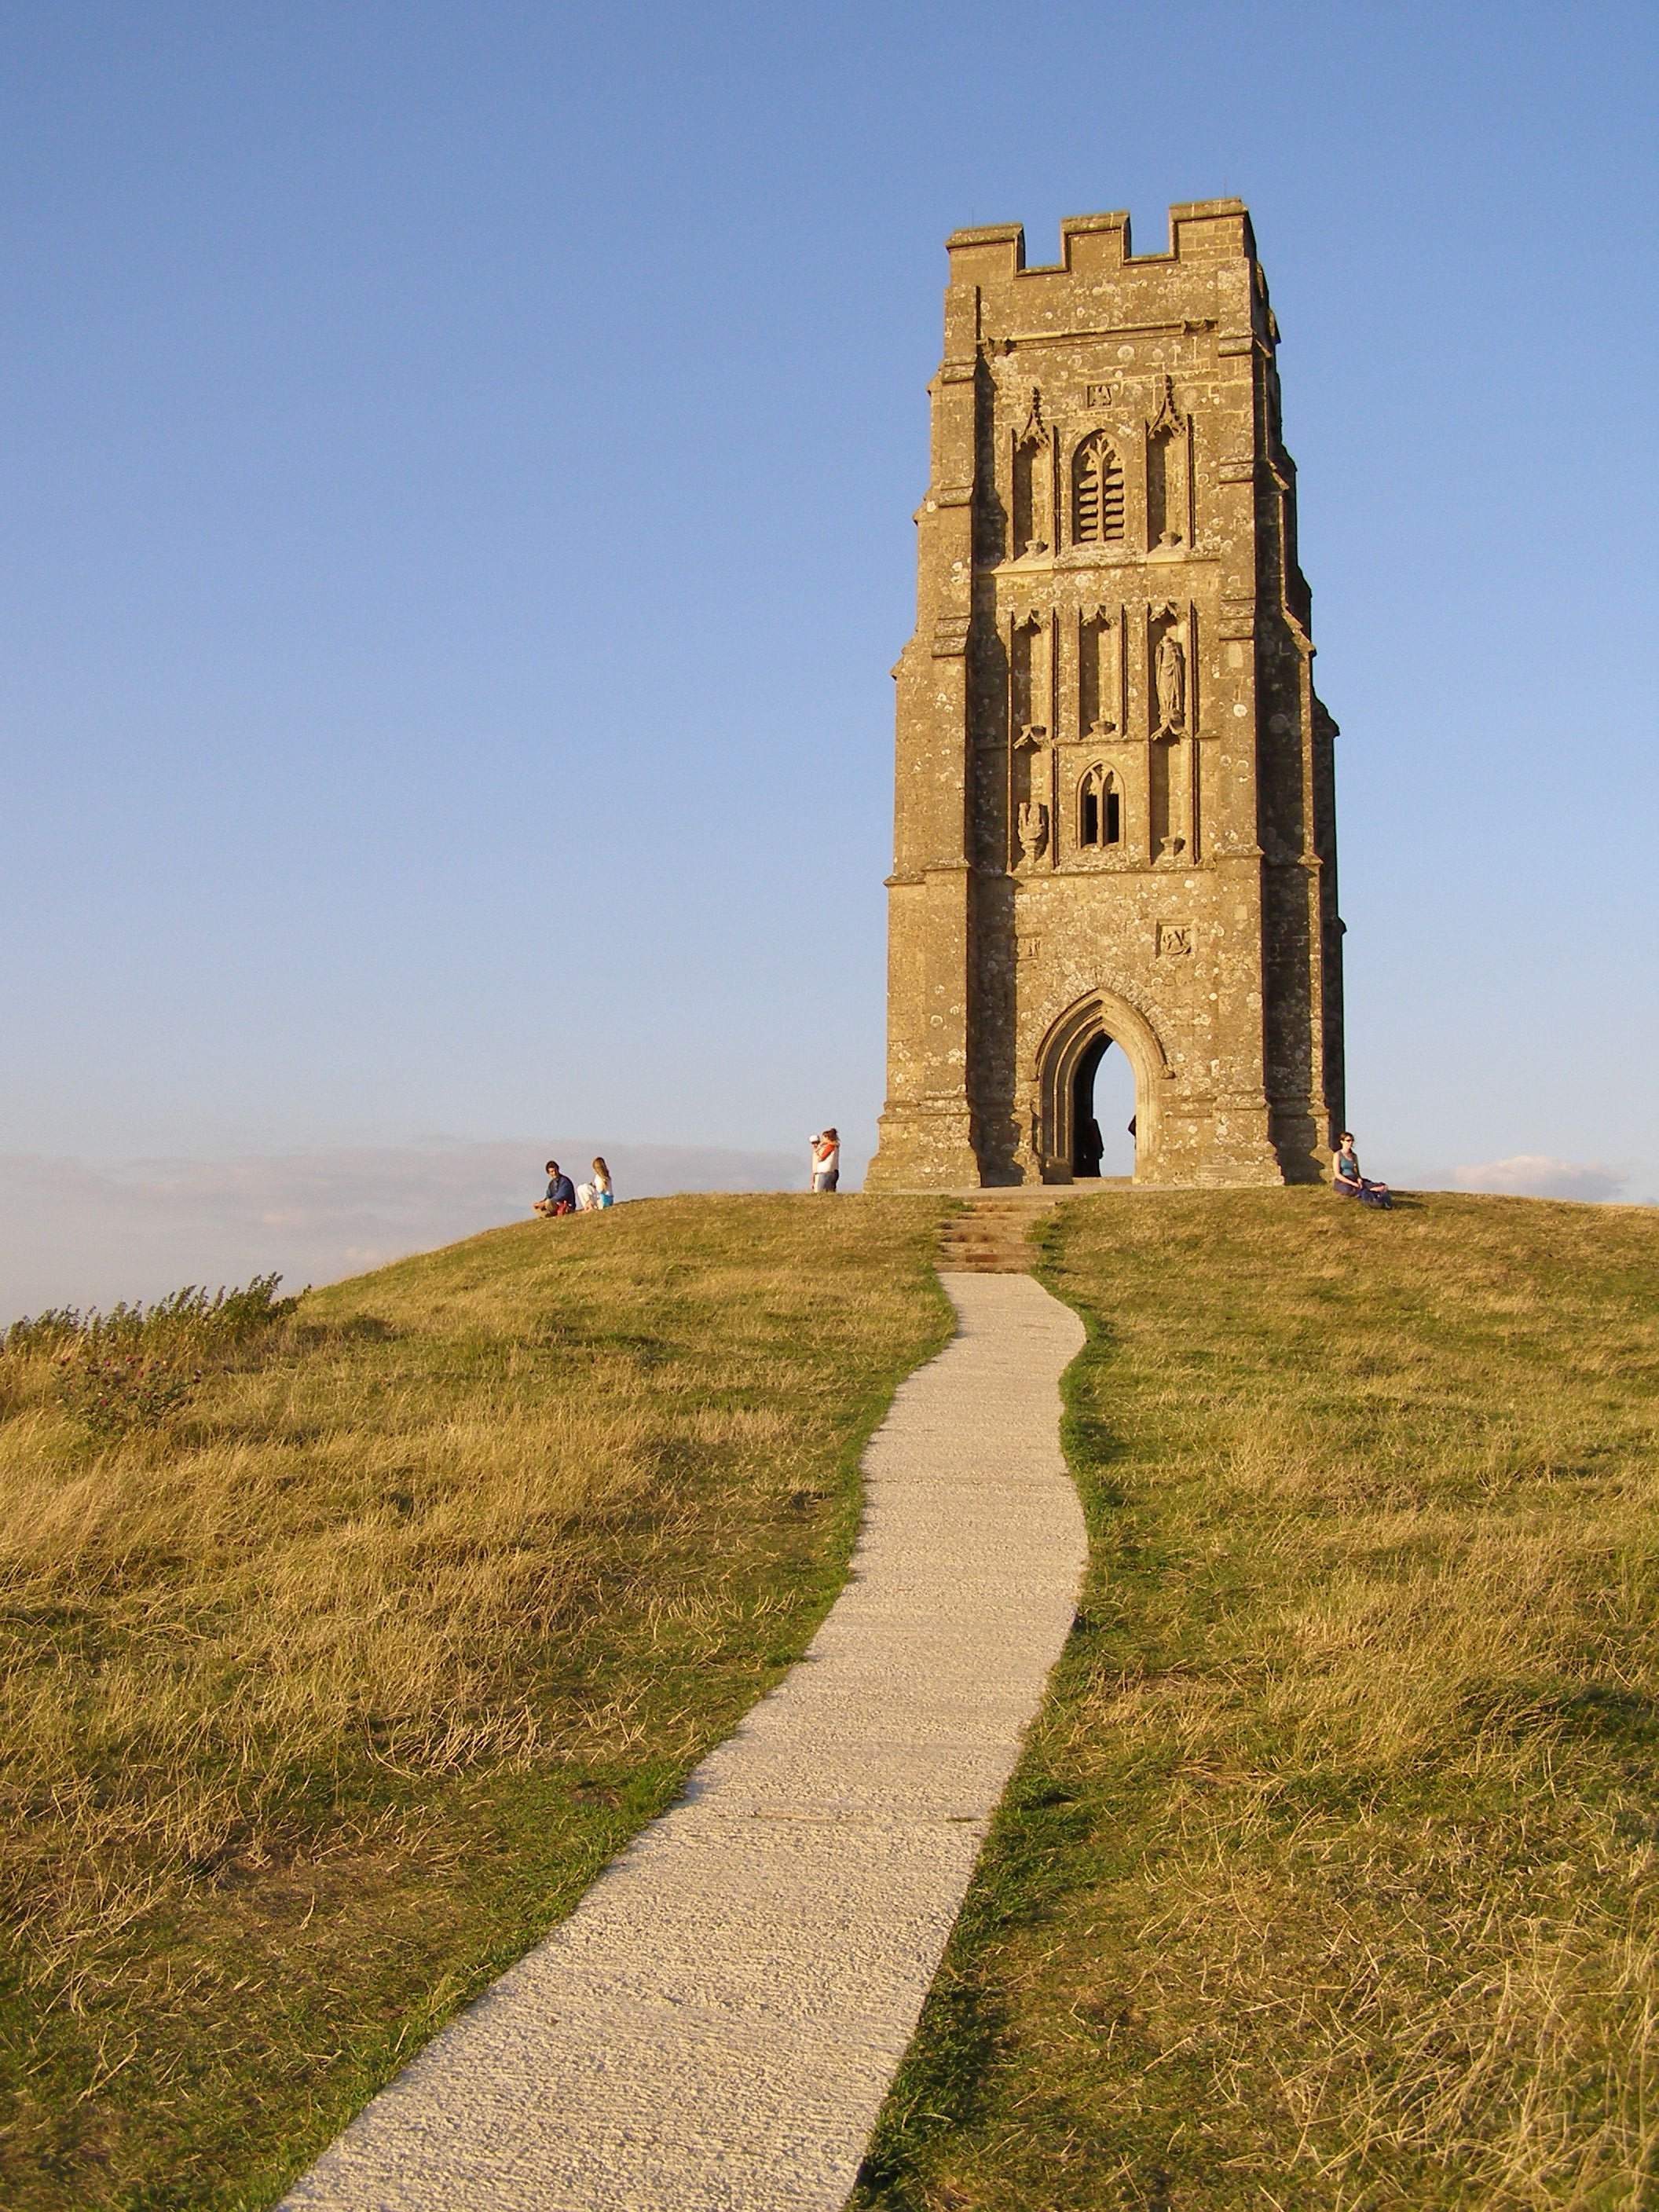 Description Summit of glastonbury tor.jpg